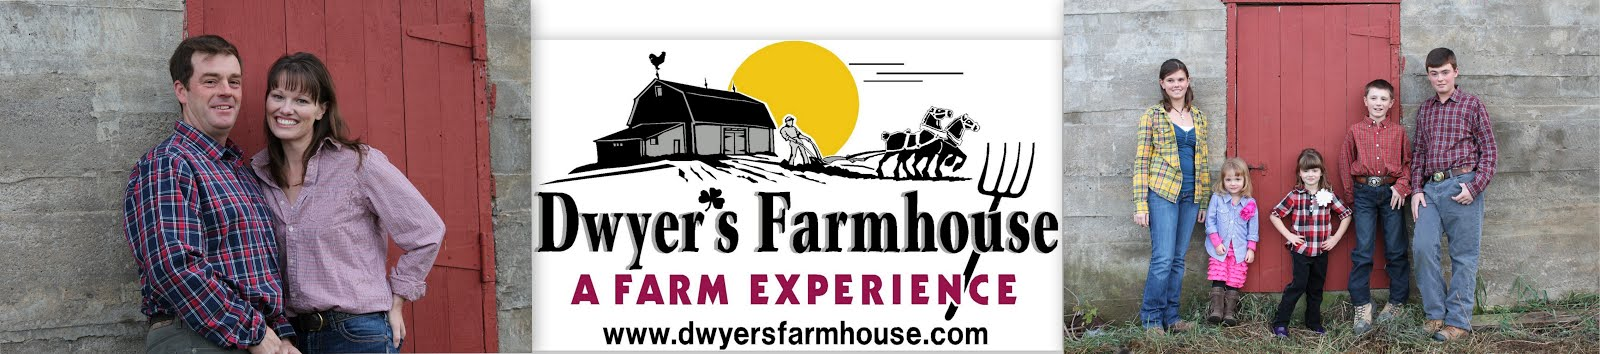 Dwyer's Farmhouse